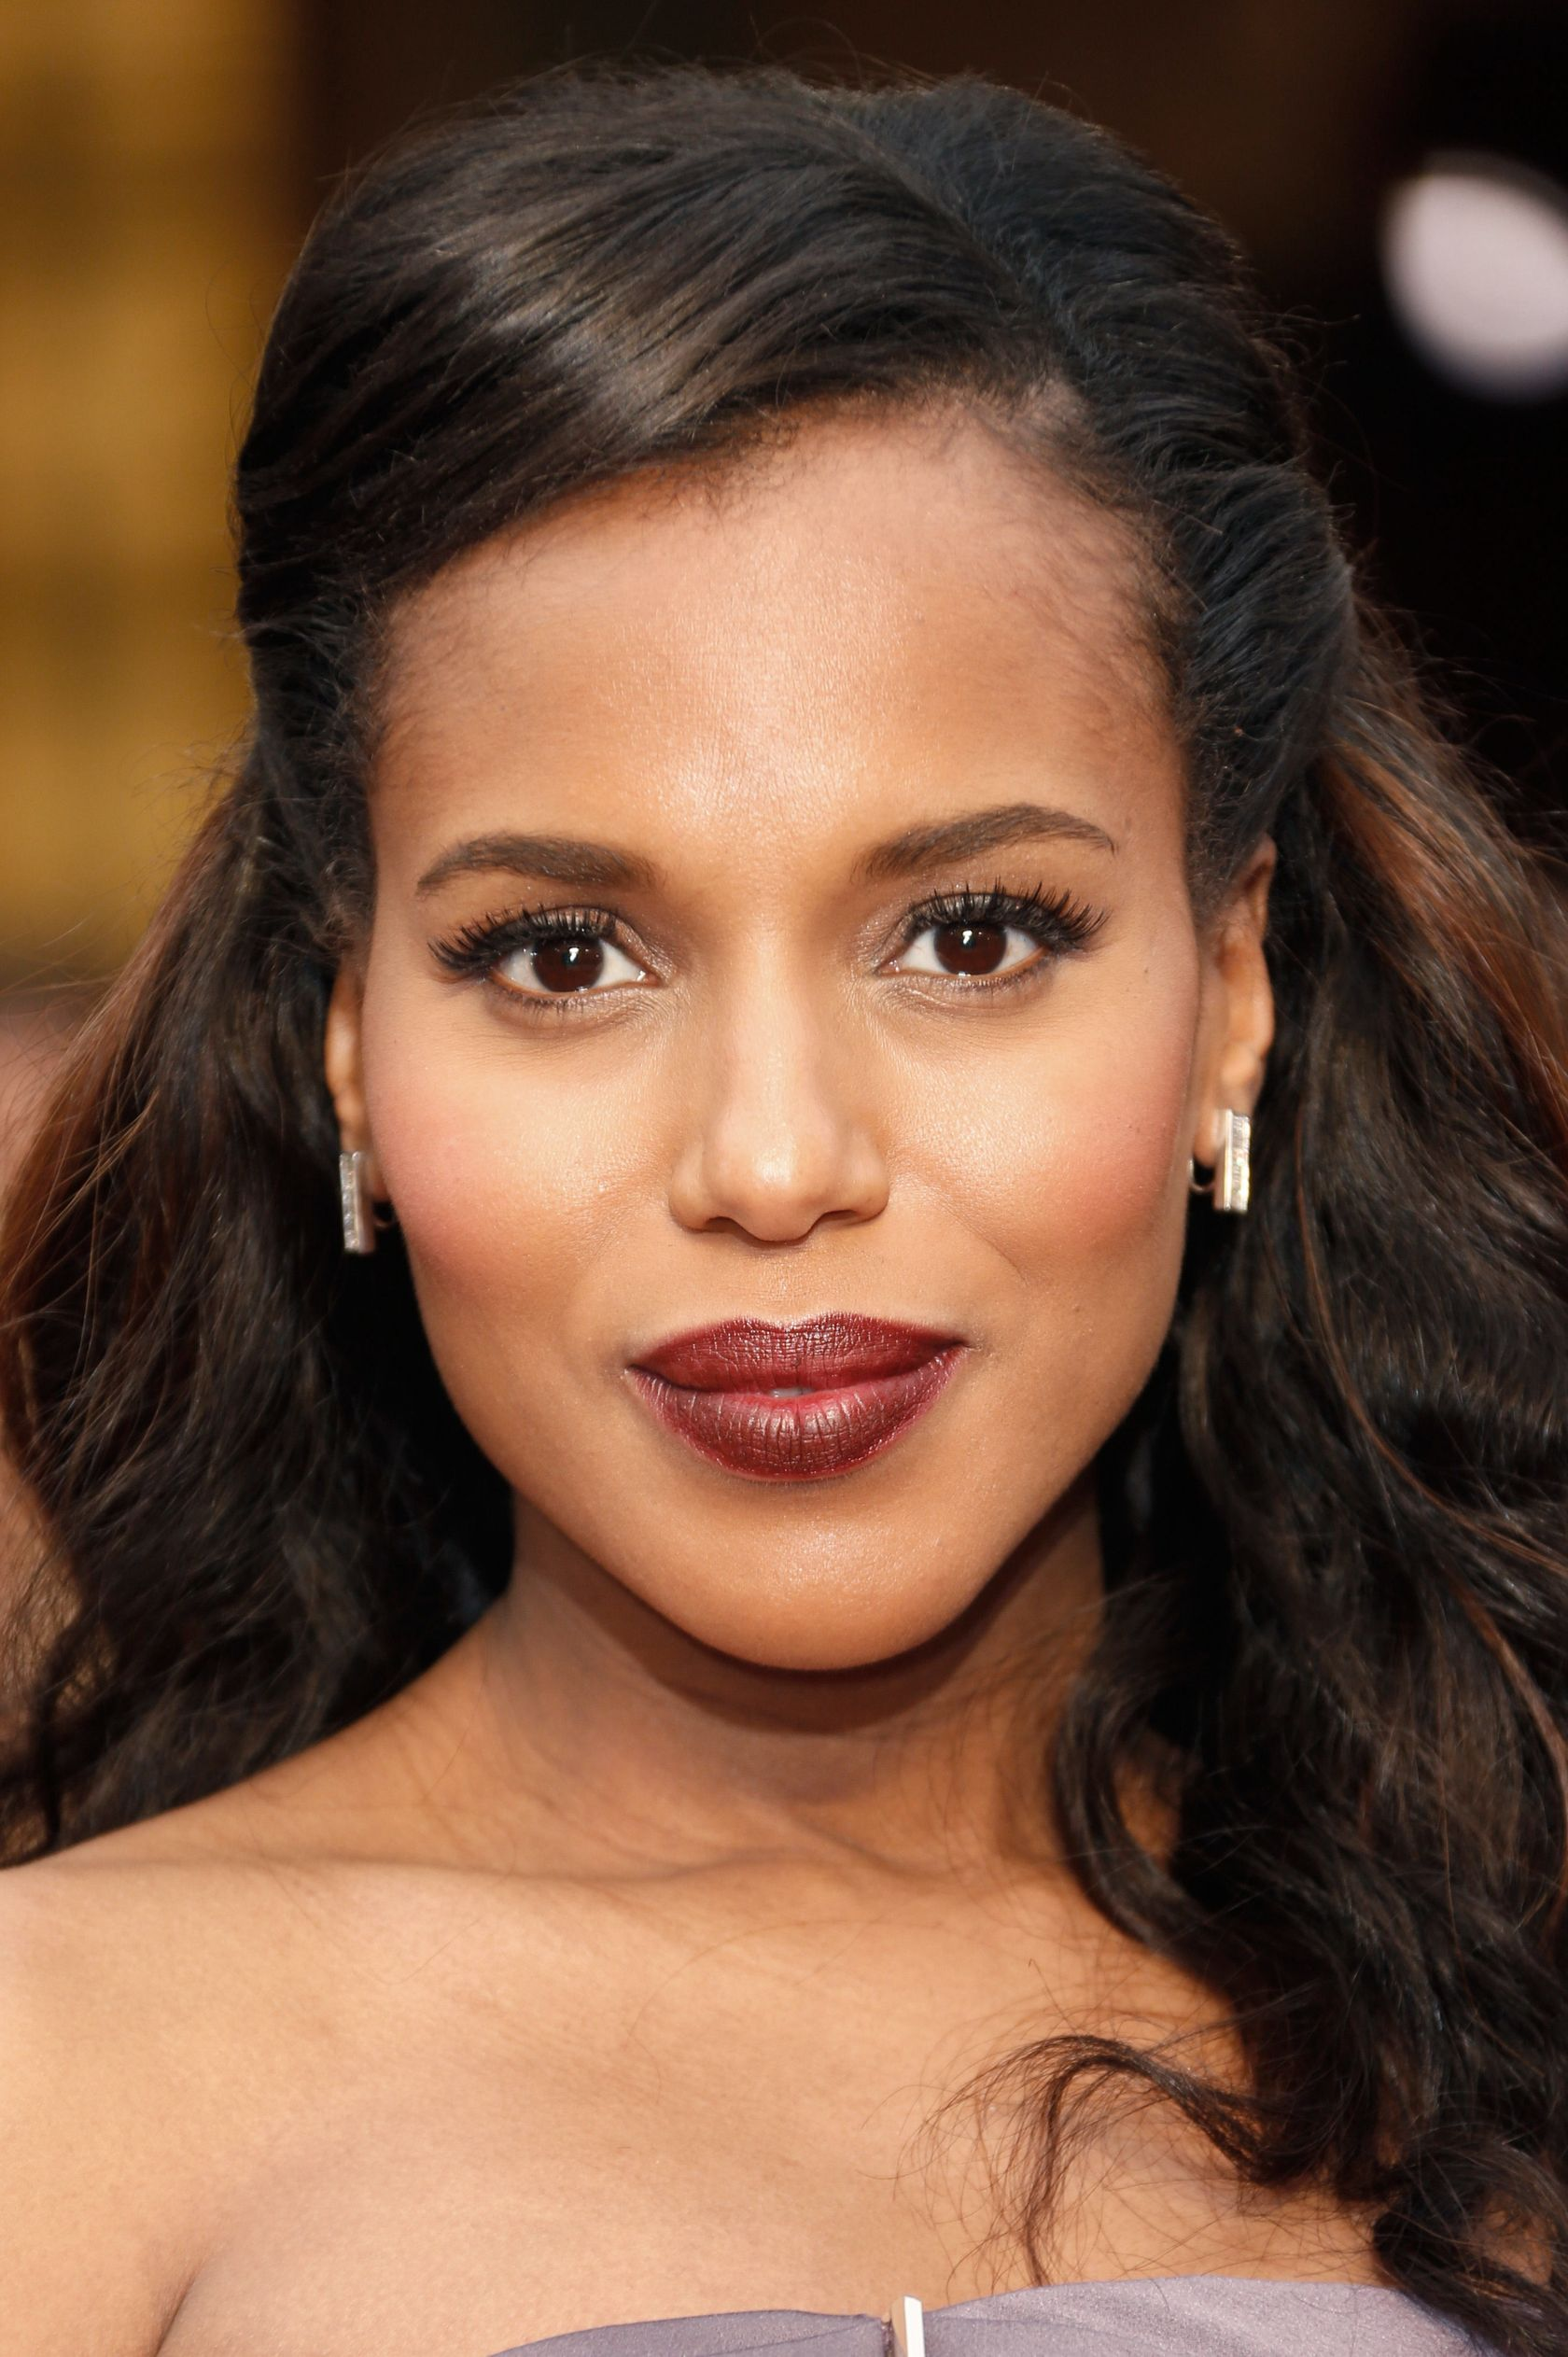 Kerry Washington The 50 Most Memorable Eyebrows Of All Time The Cut